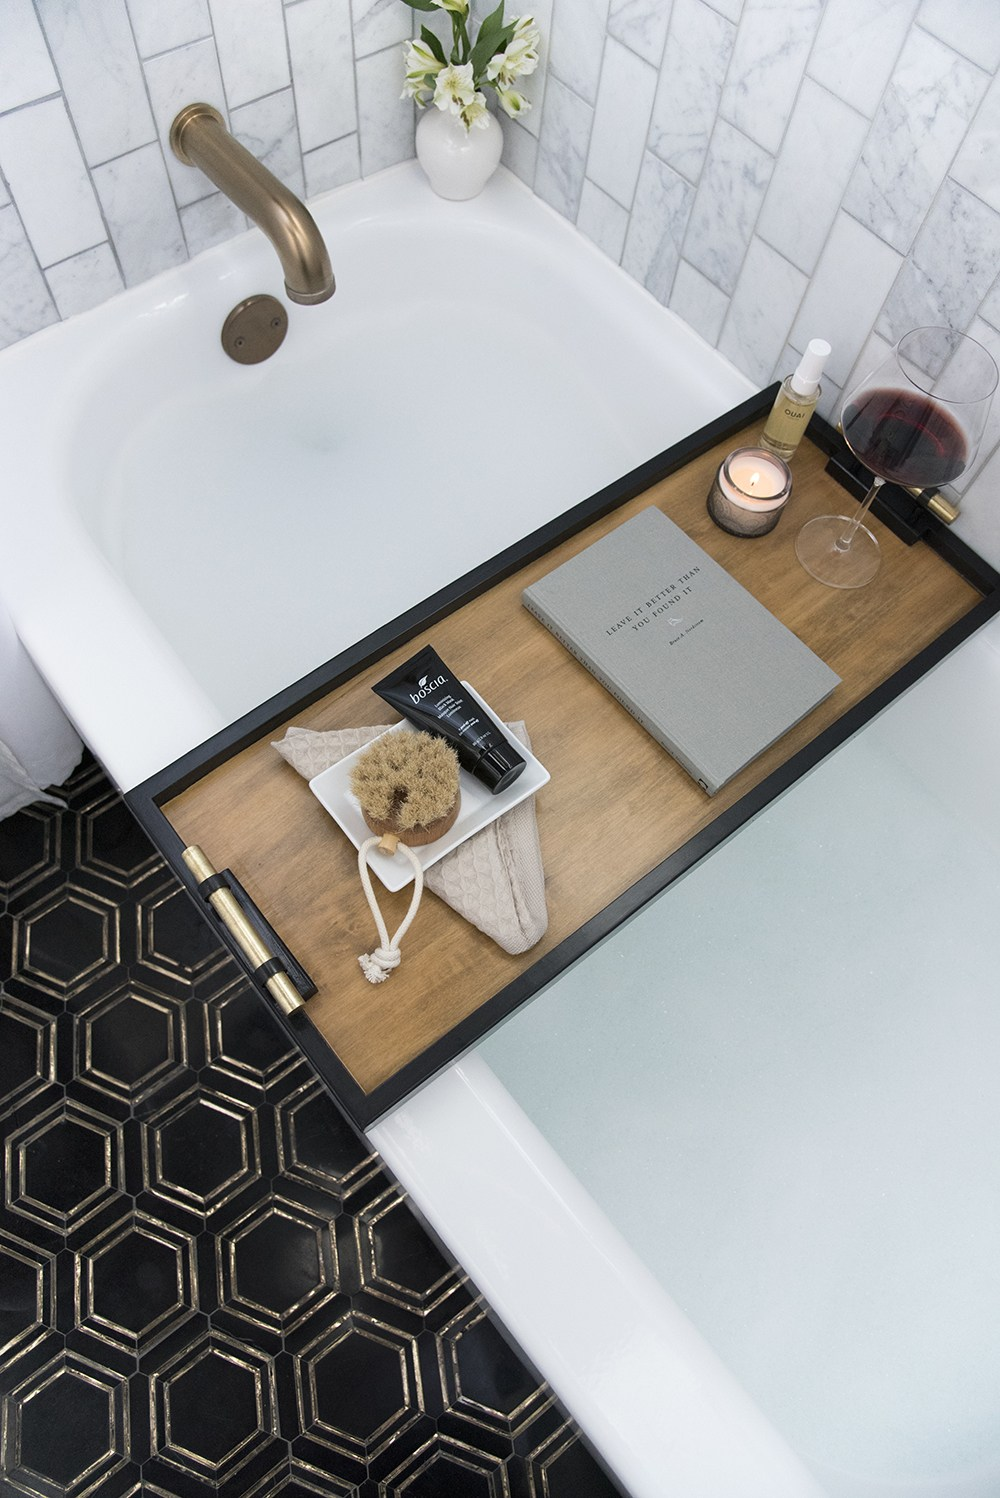 DIY minimalist bath caddy with black framing